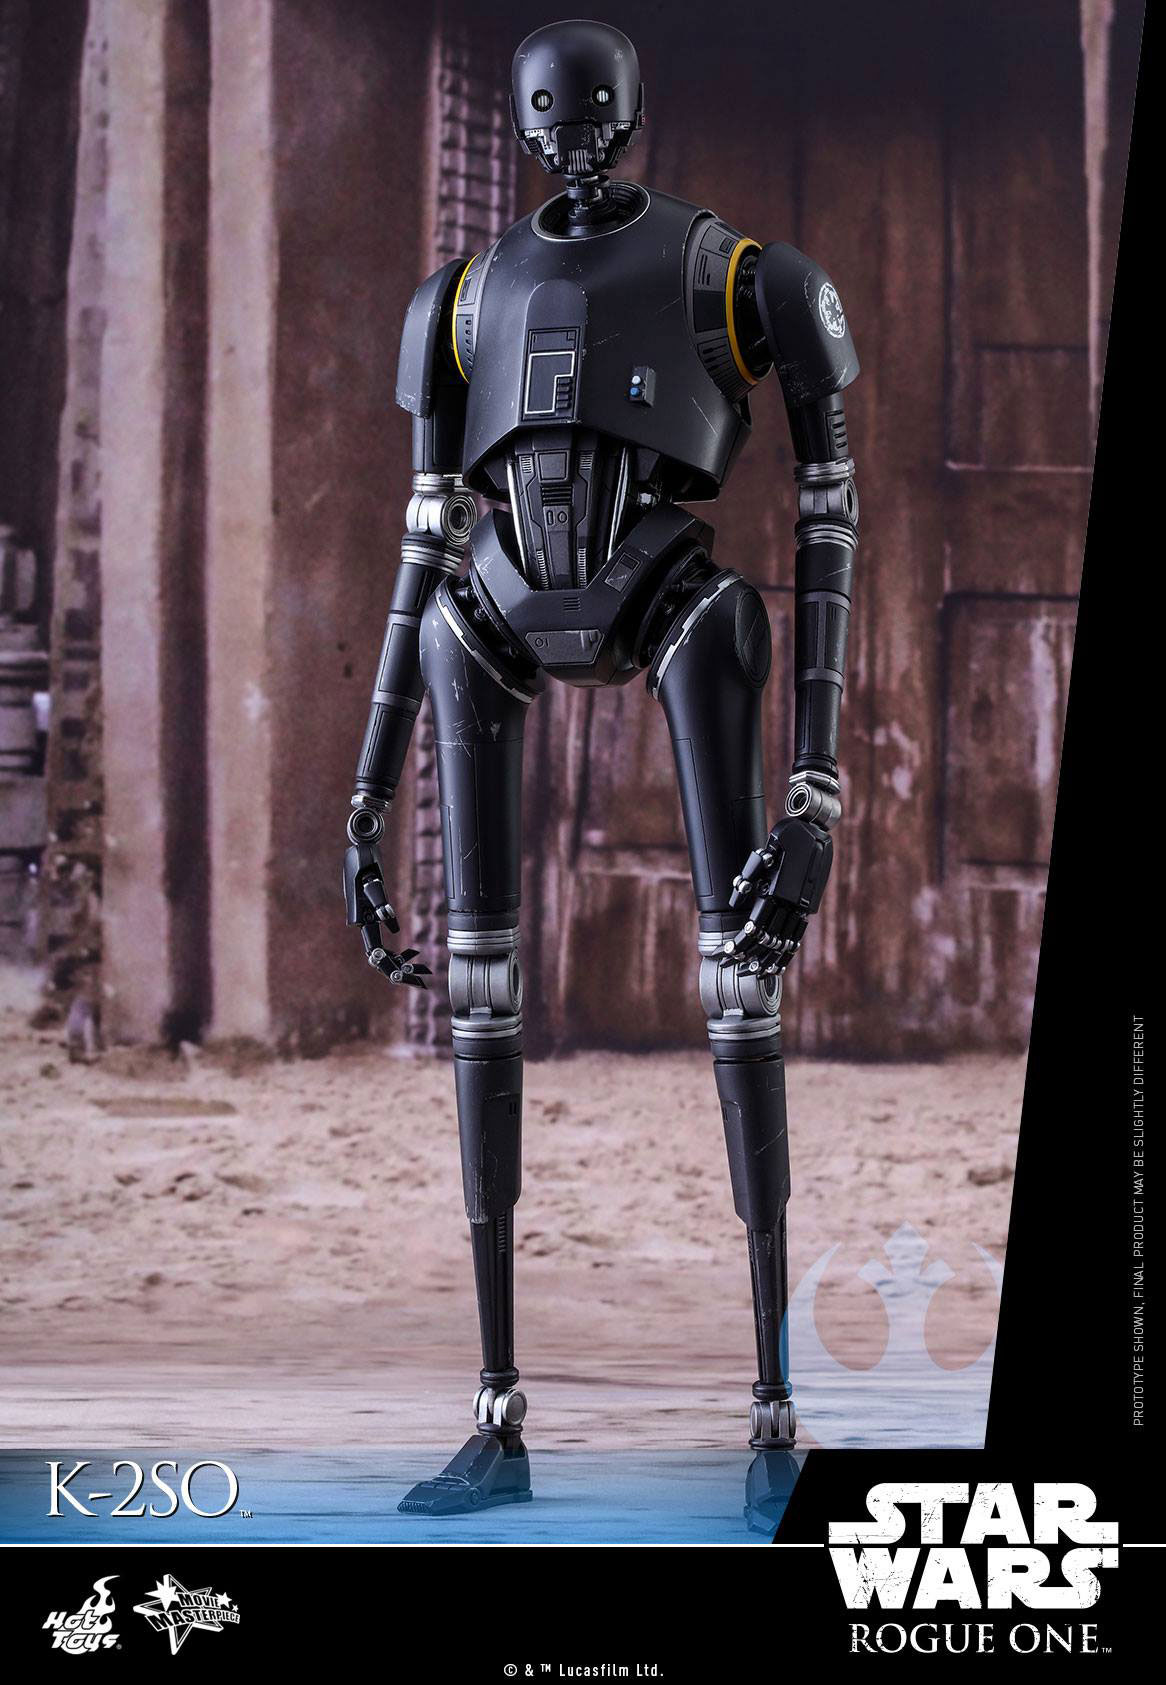 hot-toys-star-wars-rogue-one-K-2SO-figure-3